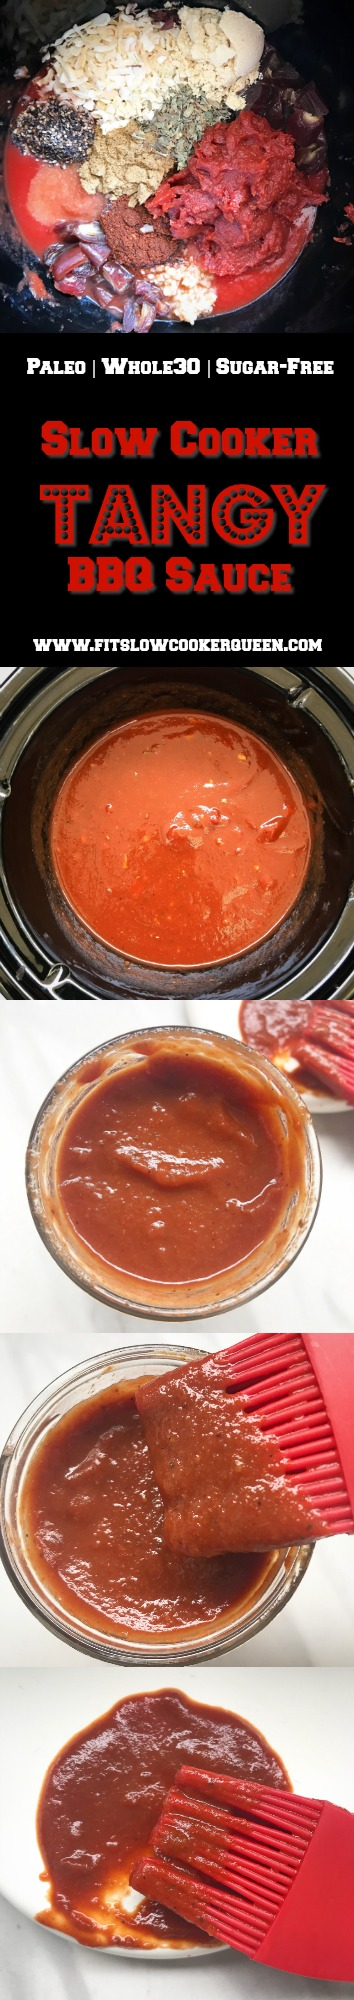 This tangy, homemade slow cooker BBQ sauce is sugar-free, gluten-free, whole30 compliant, and paleo but still packed with flavor.